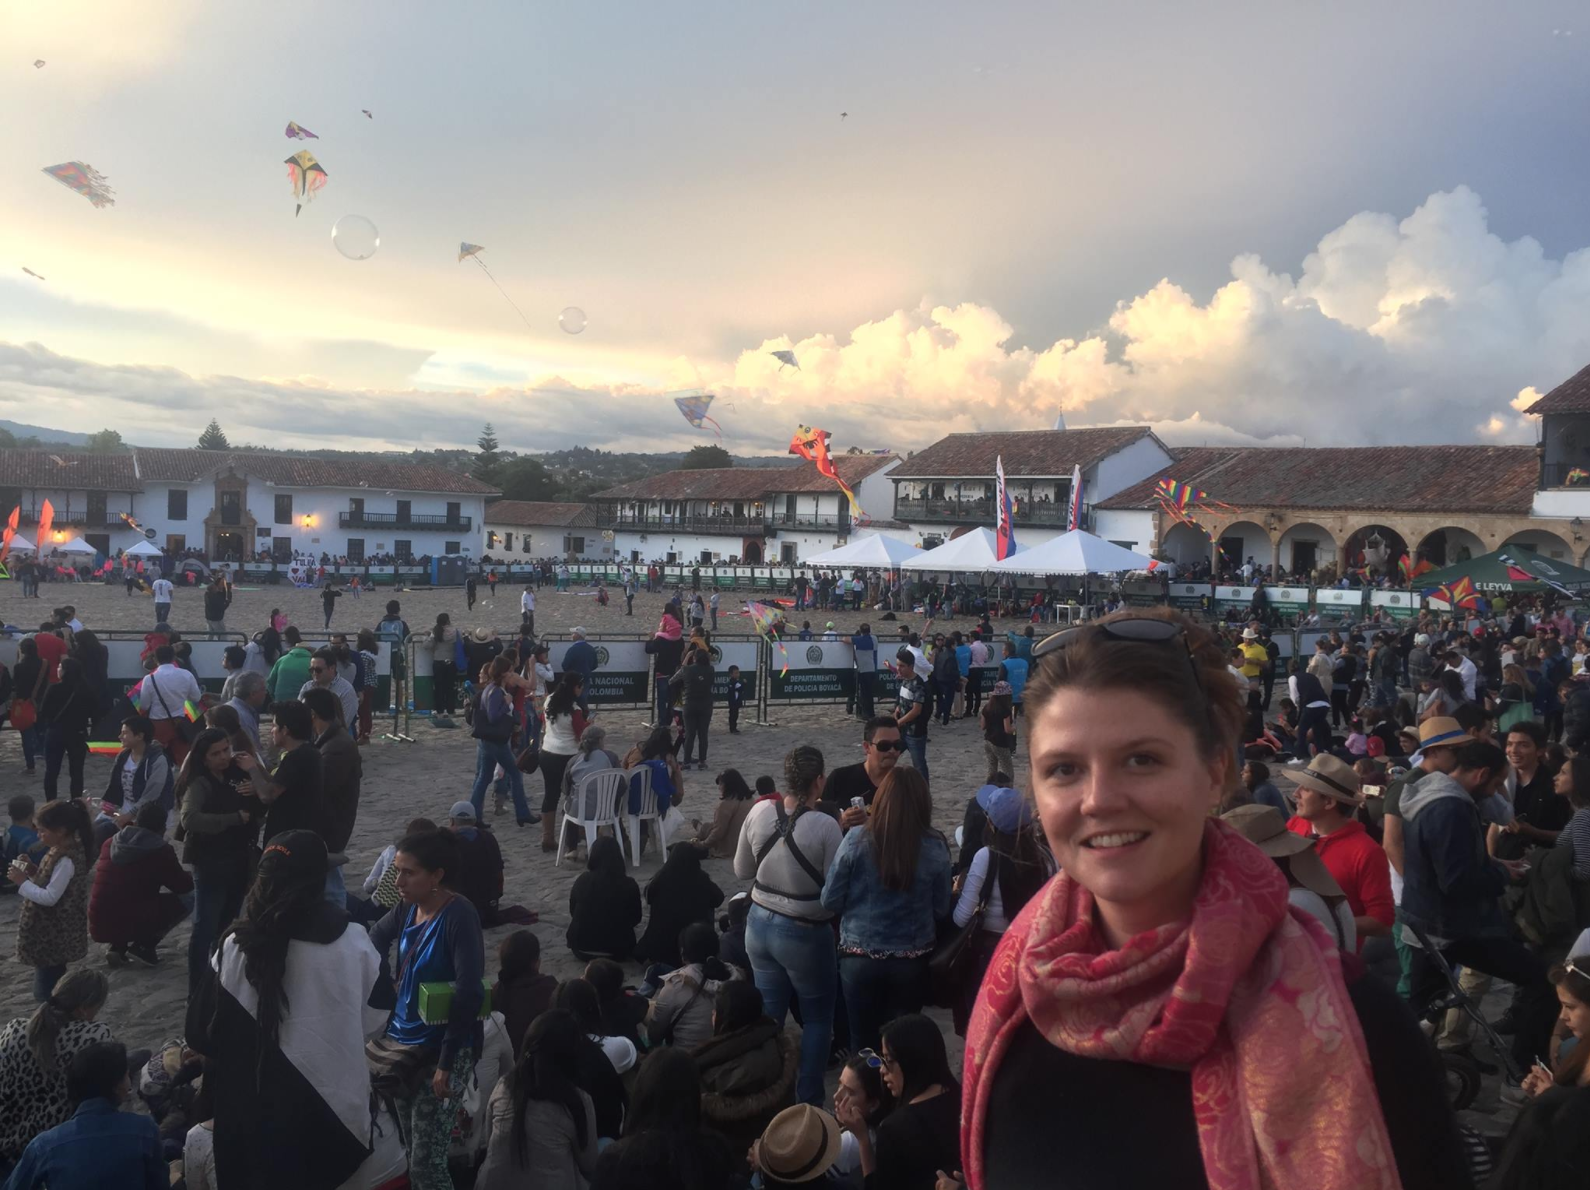 The main square in Villa de Leyva, Colombia (the weekend of the kite fest).